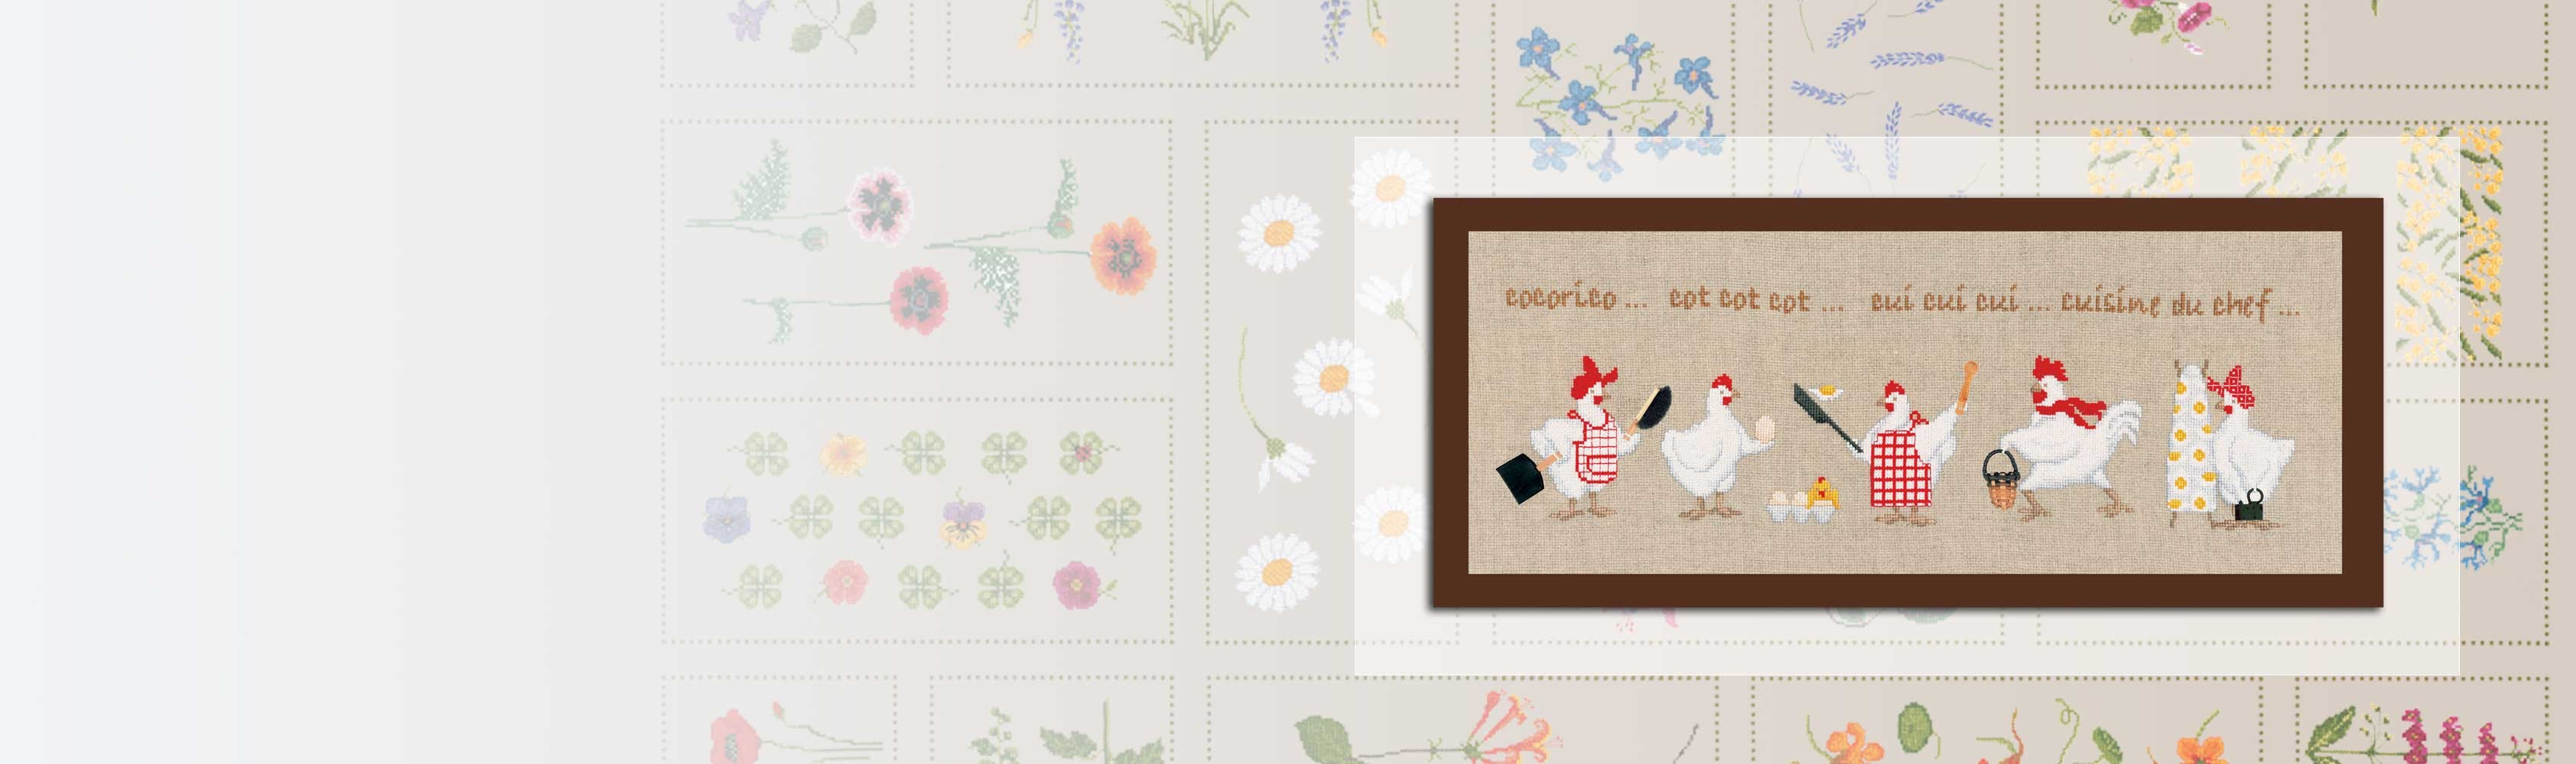 Little Housewives. Item n° 1058. Counted cross stitch kit on Aida linen